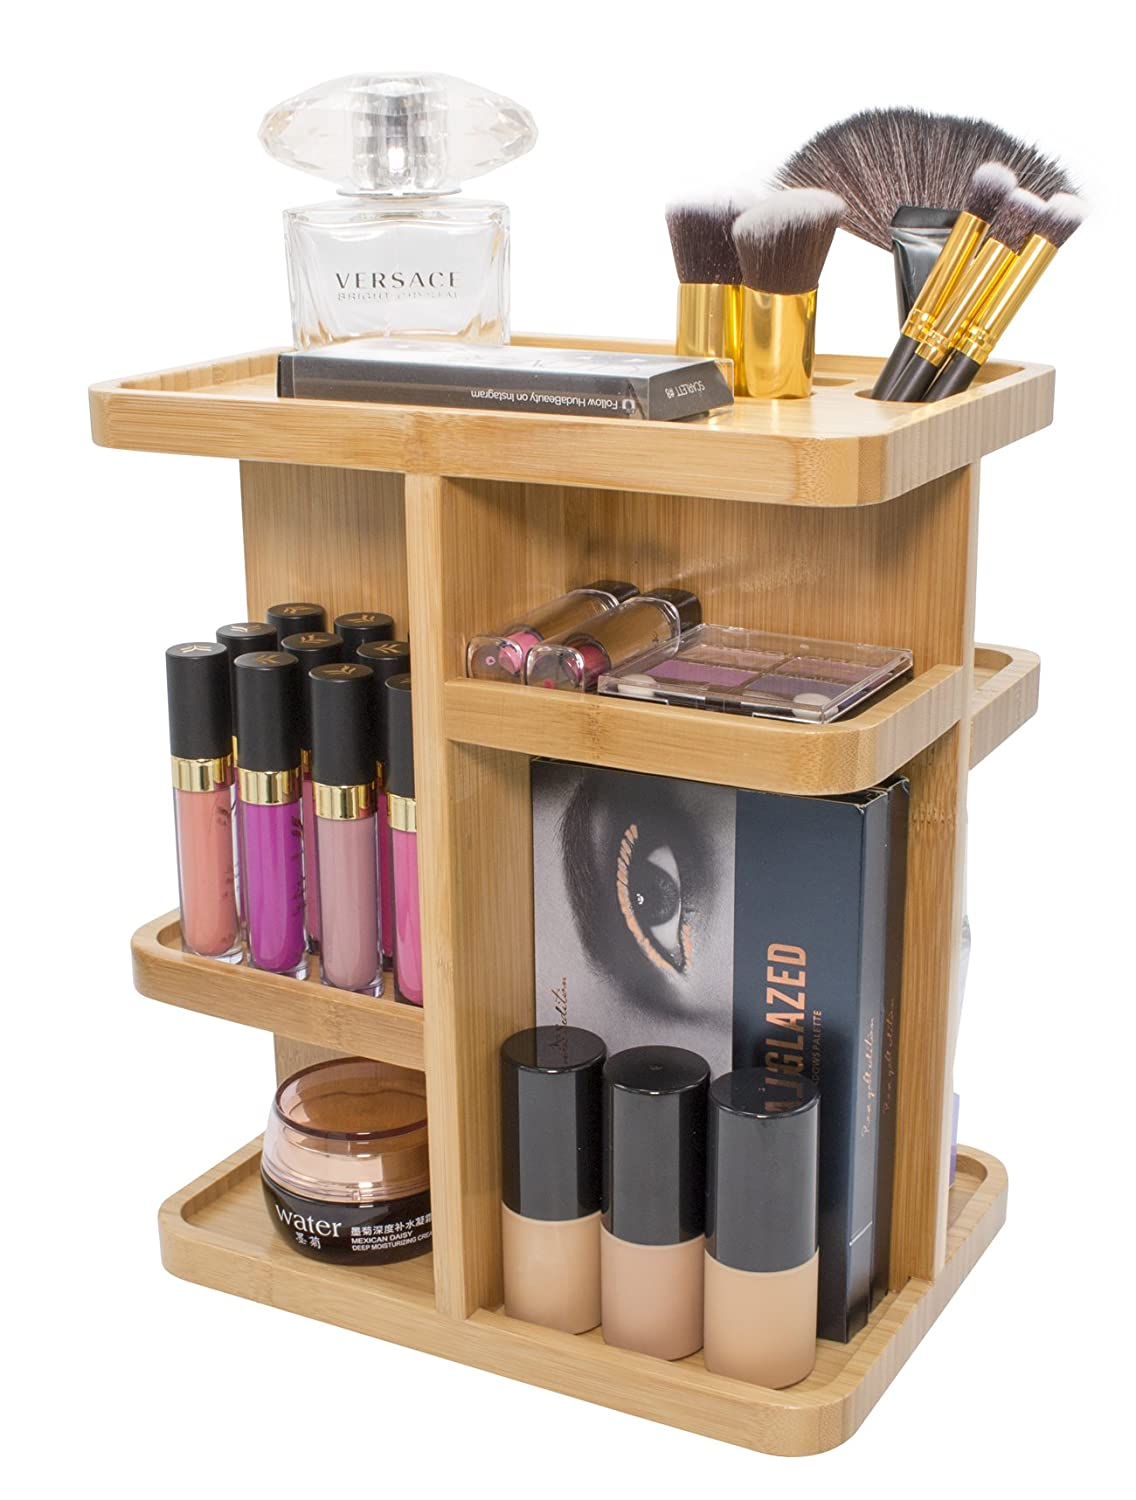 Sorbus 360° Bamboo Cosmetic Organizer, Multi-Function Storage Carousel for Makeup, Toiletries, and More — for Vanity, Desk, Bathroom, Bedroom, Closet, Kitchen